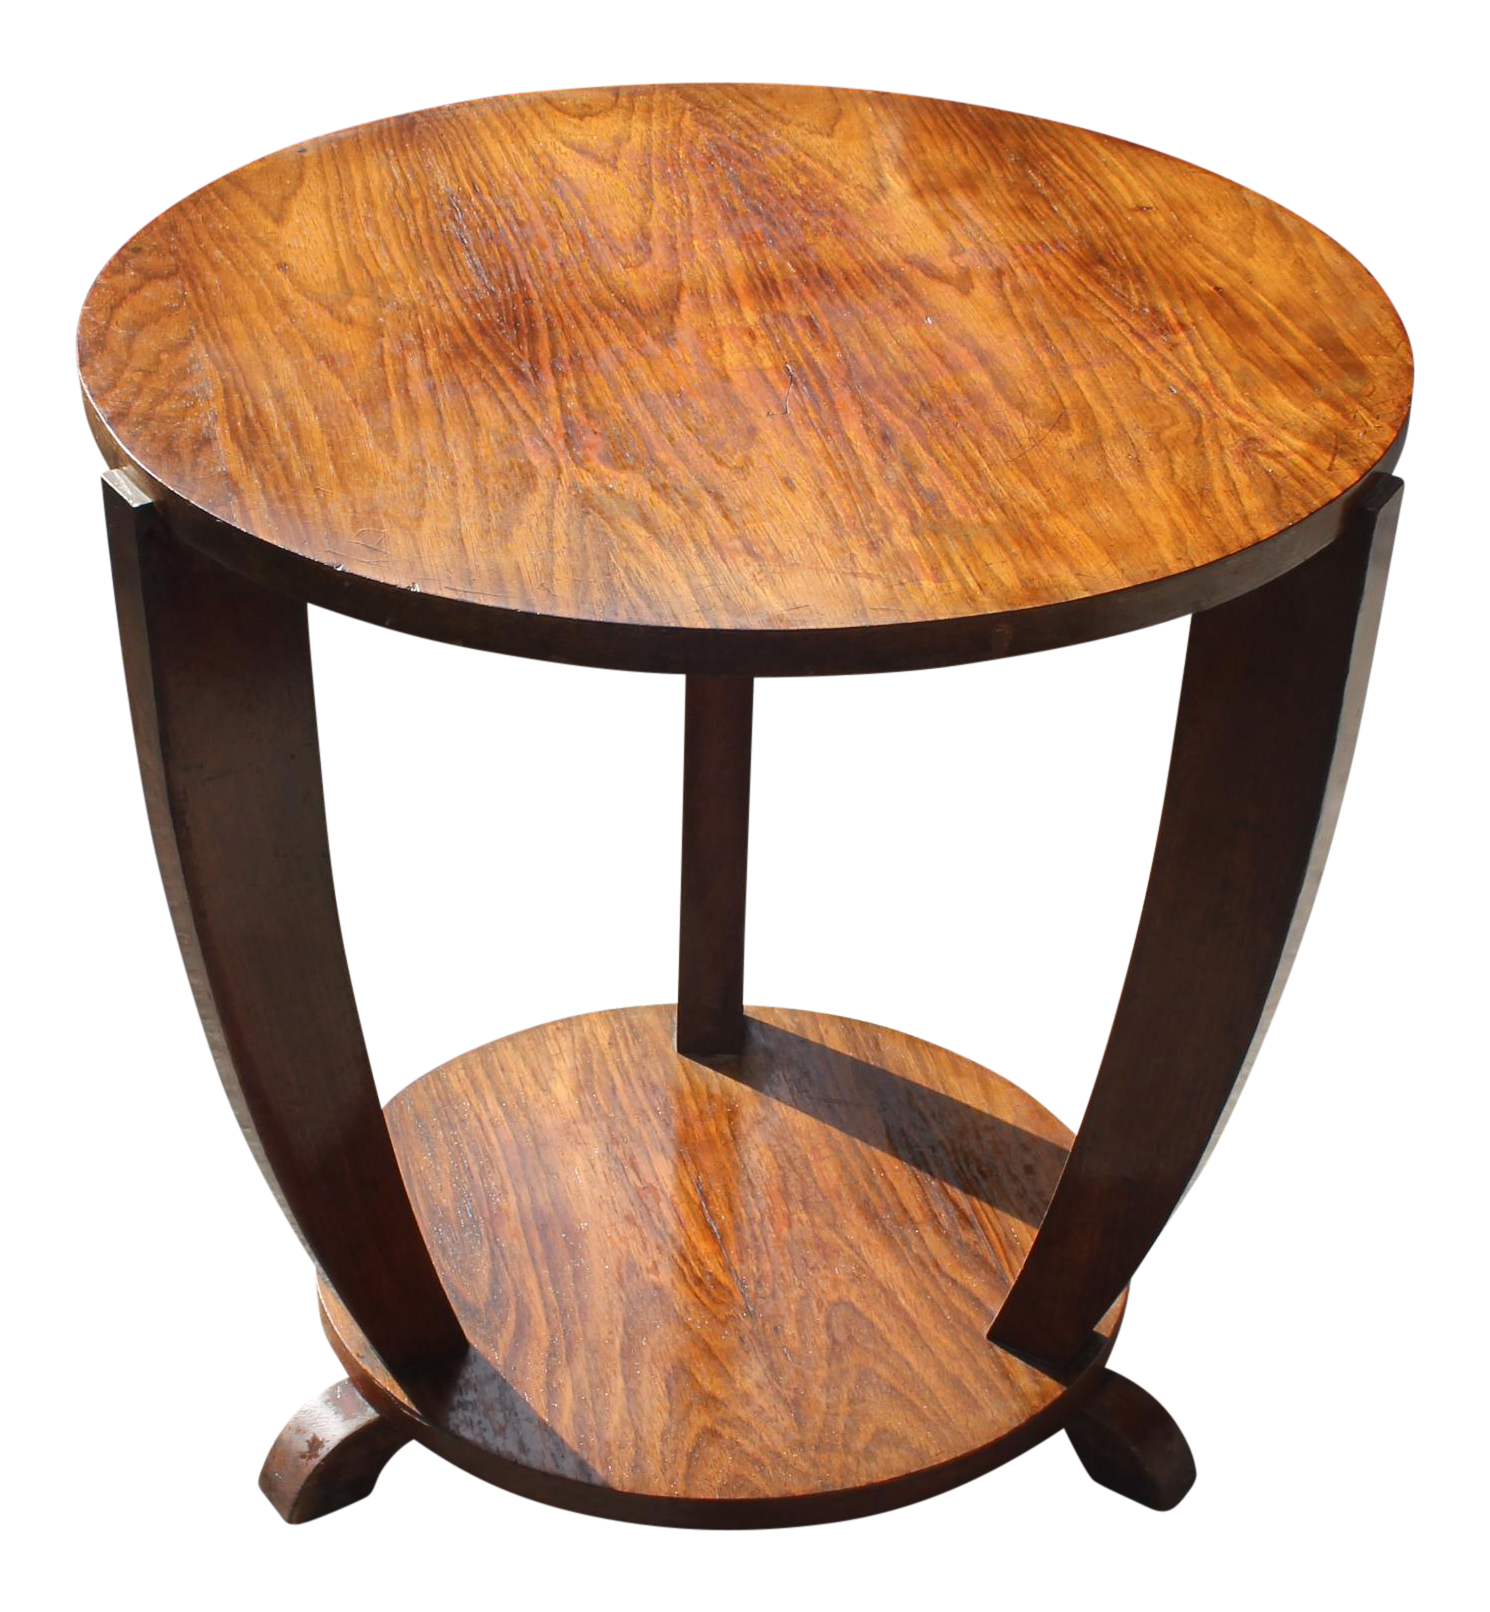 Beautiful French Art Deco Coffee Table Or Side Table Exotic Walnut